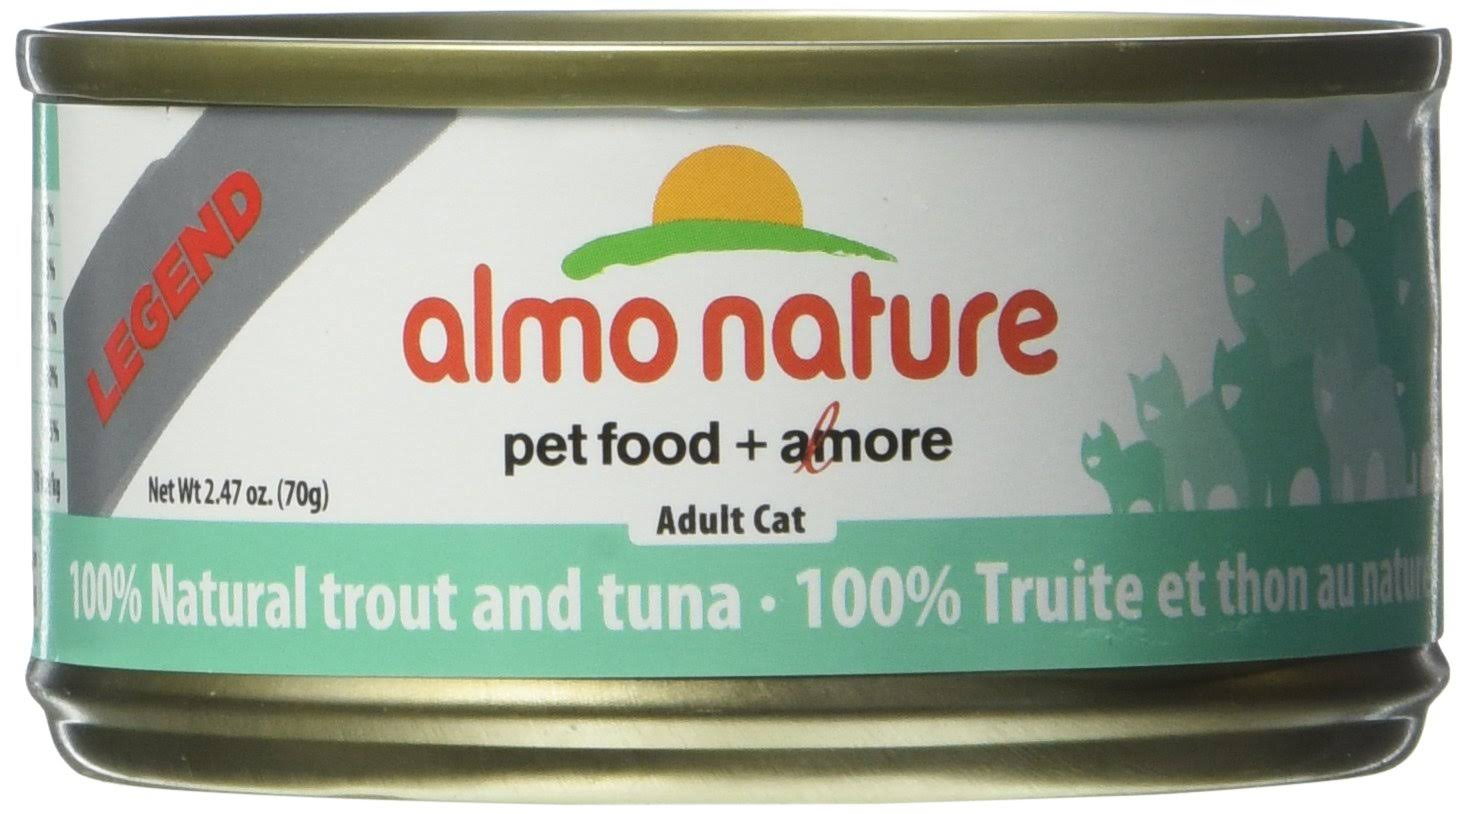 Almo Nature Trout and Tuna Food (24 Cans per case), 2.47 oz.